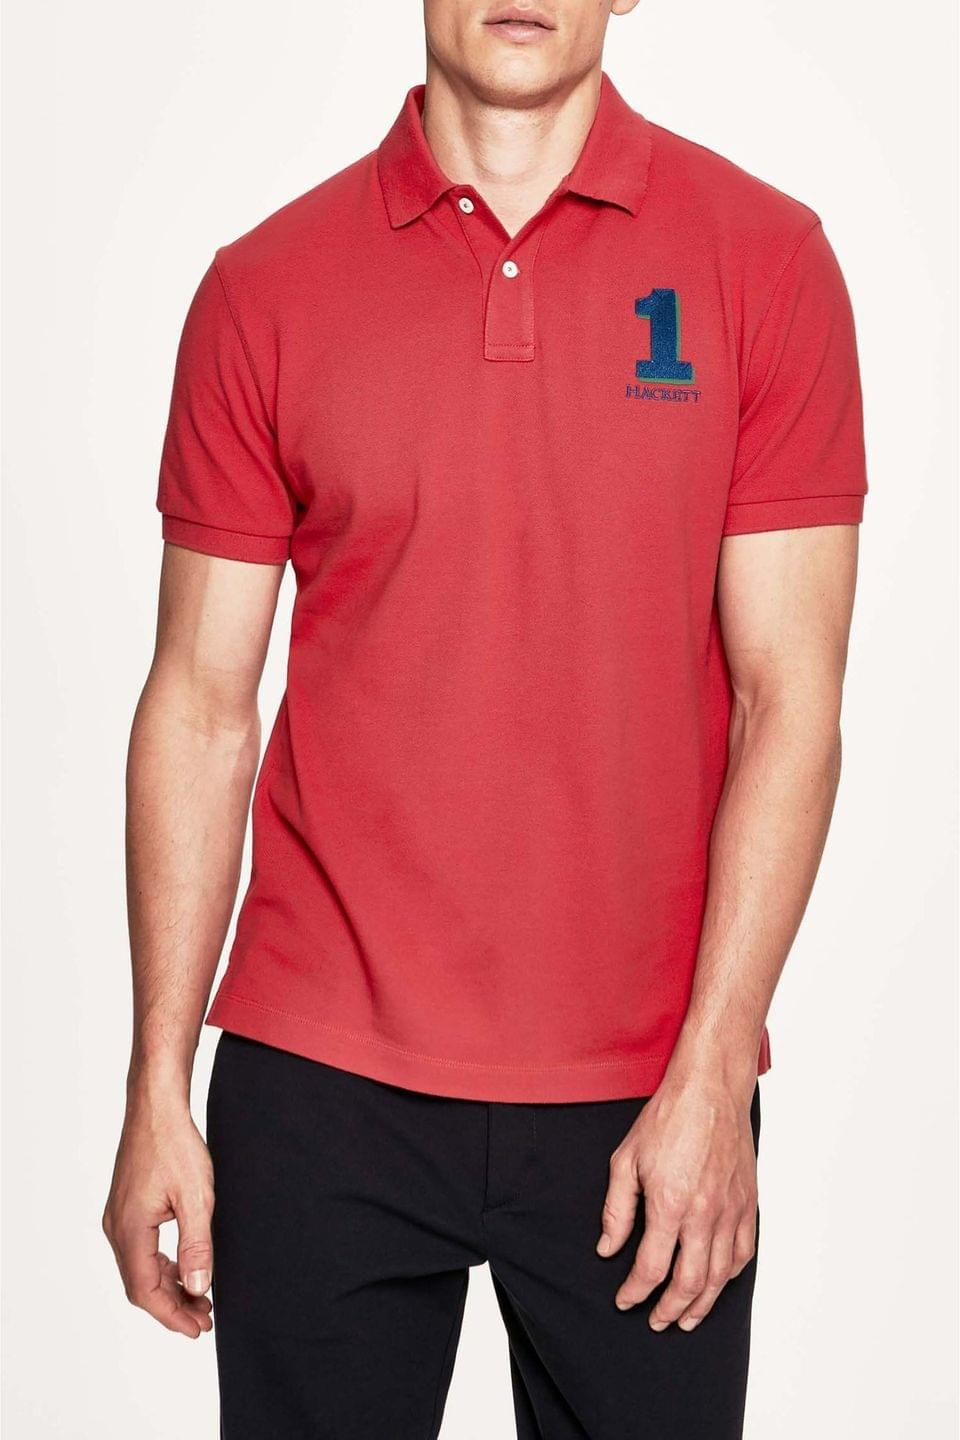 Men's Hackett London Red Classic Fit Short Sleeved Polo